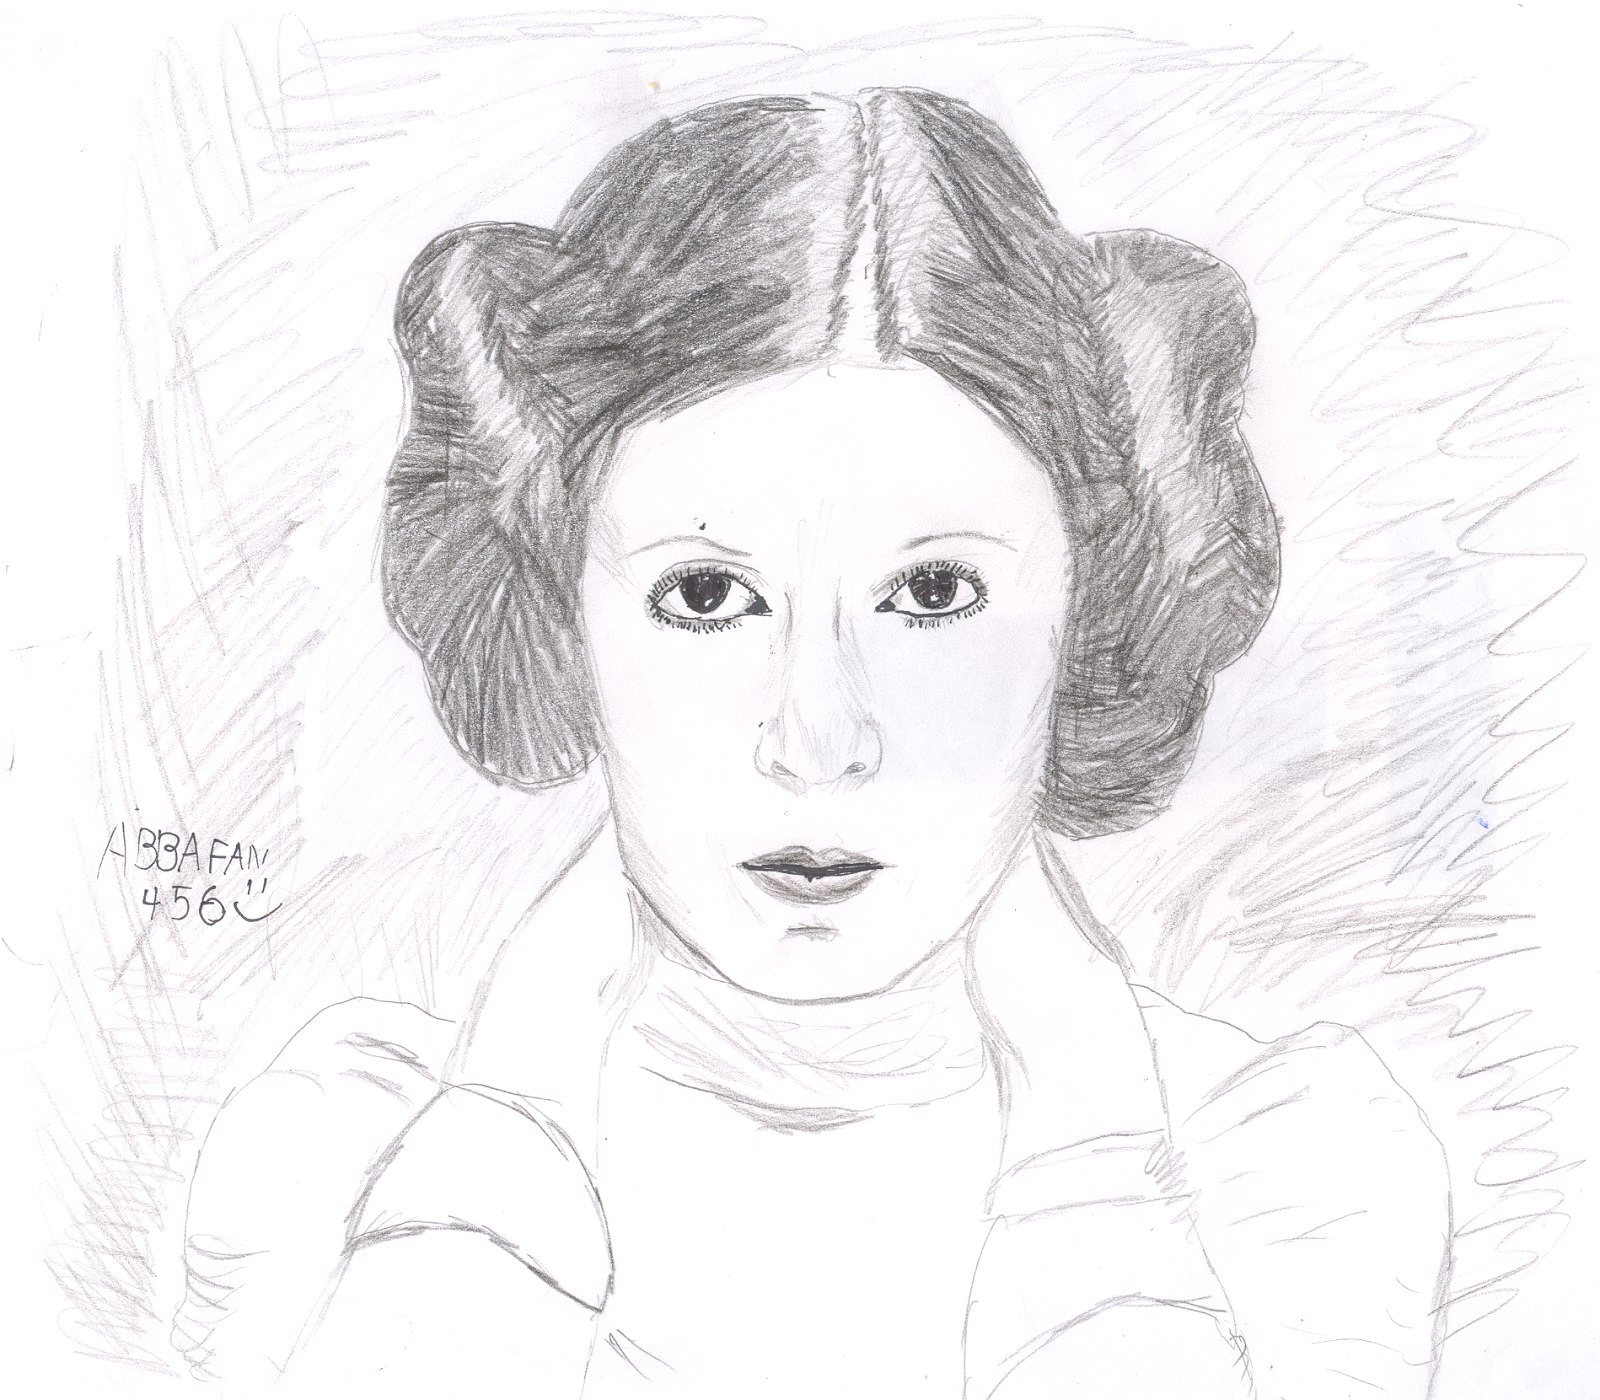 Princess leia coloring pages - Abbafan456s